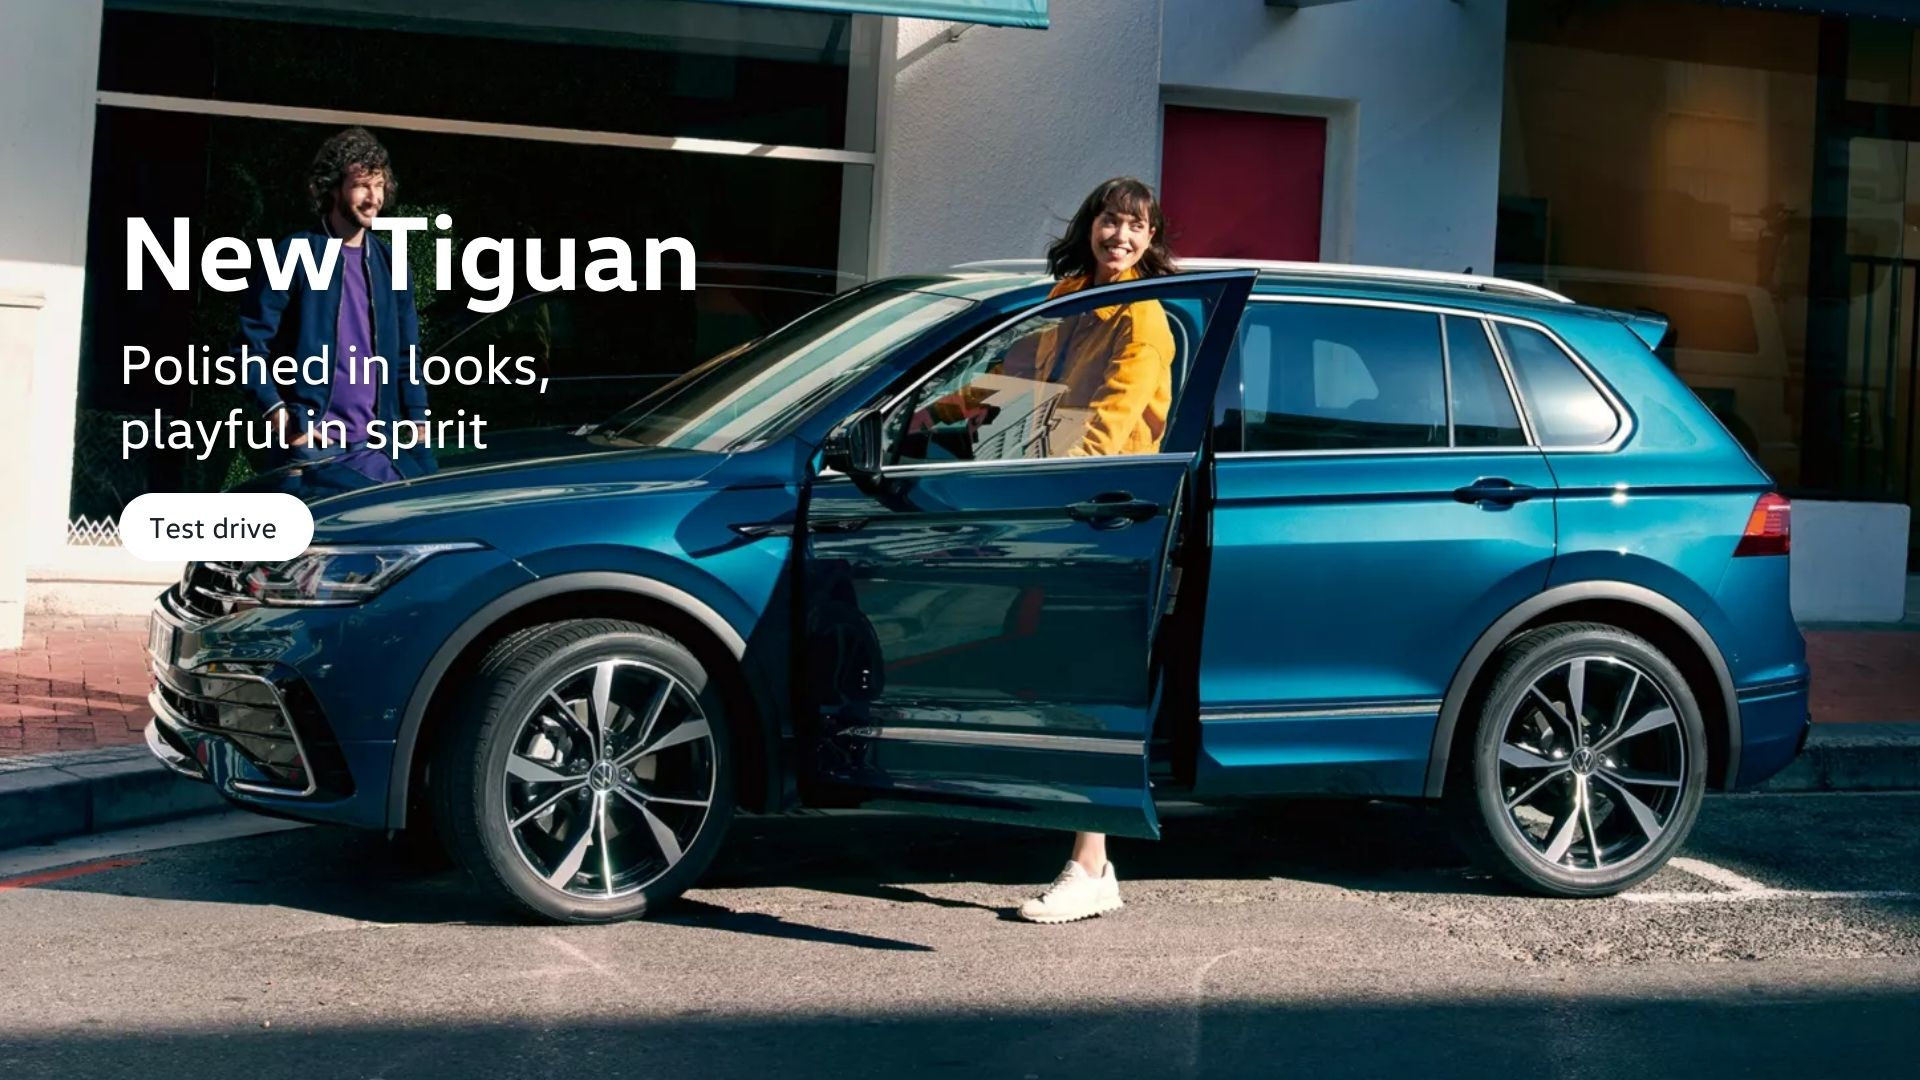 New Tiguan. Polished in looks, playful in spirit.